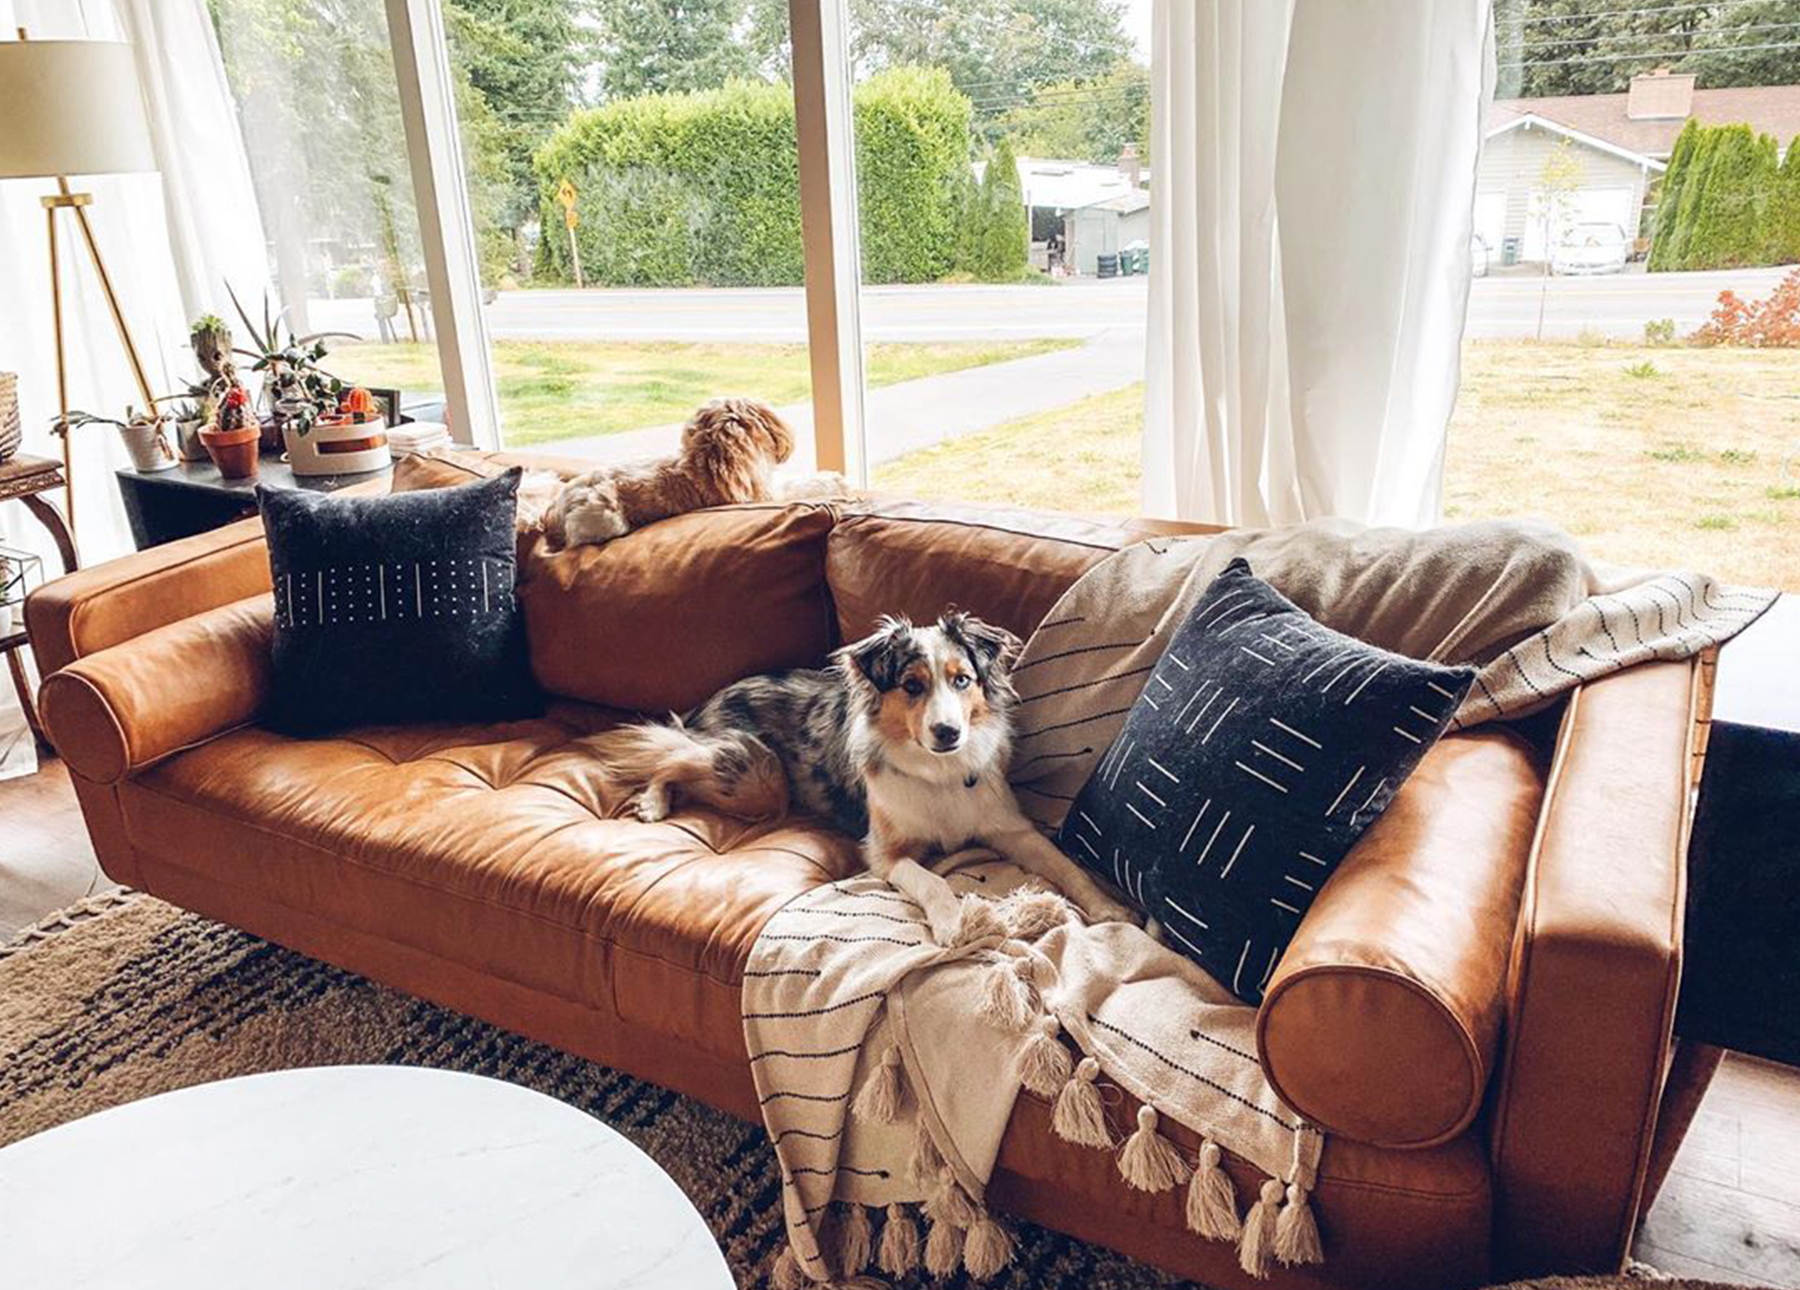 A tan leather sofa with lack pillows sits in a rancher-style hours. Two dogs are taking up the prime spots.